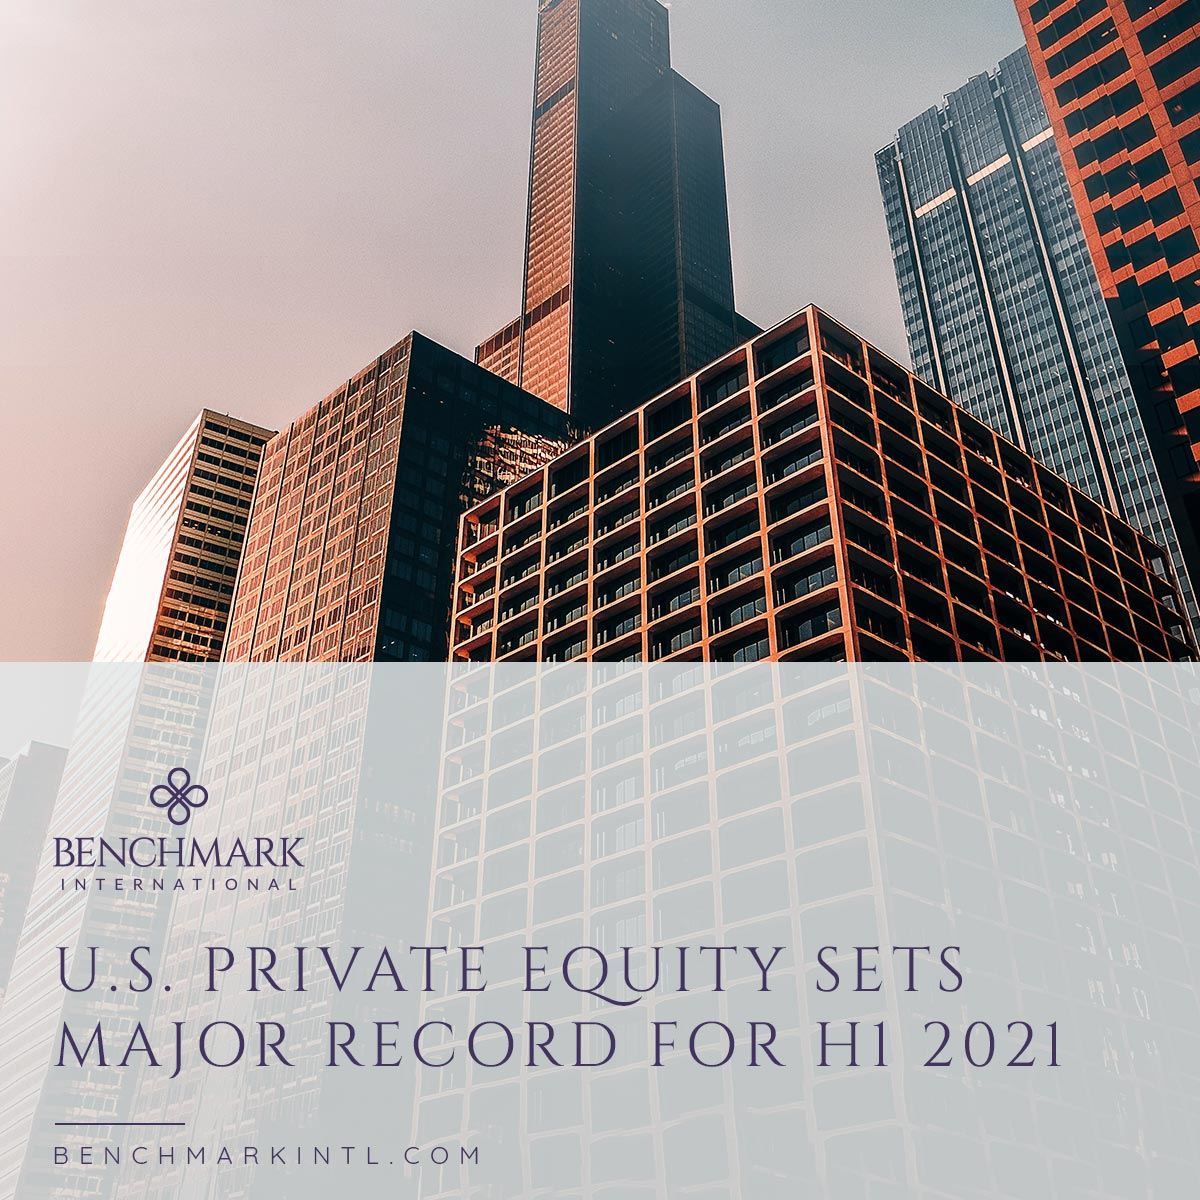 U.S._Private_Equity_Sets_Major_Record_For_H1_2021_Social(1)